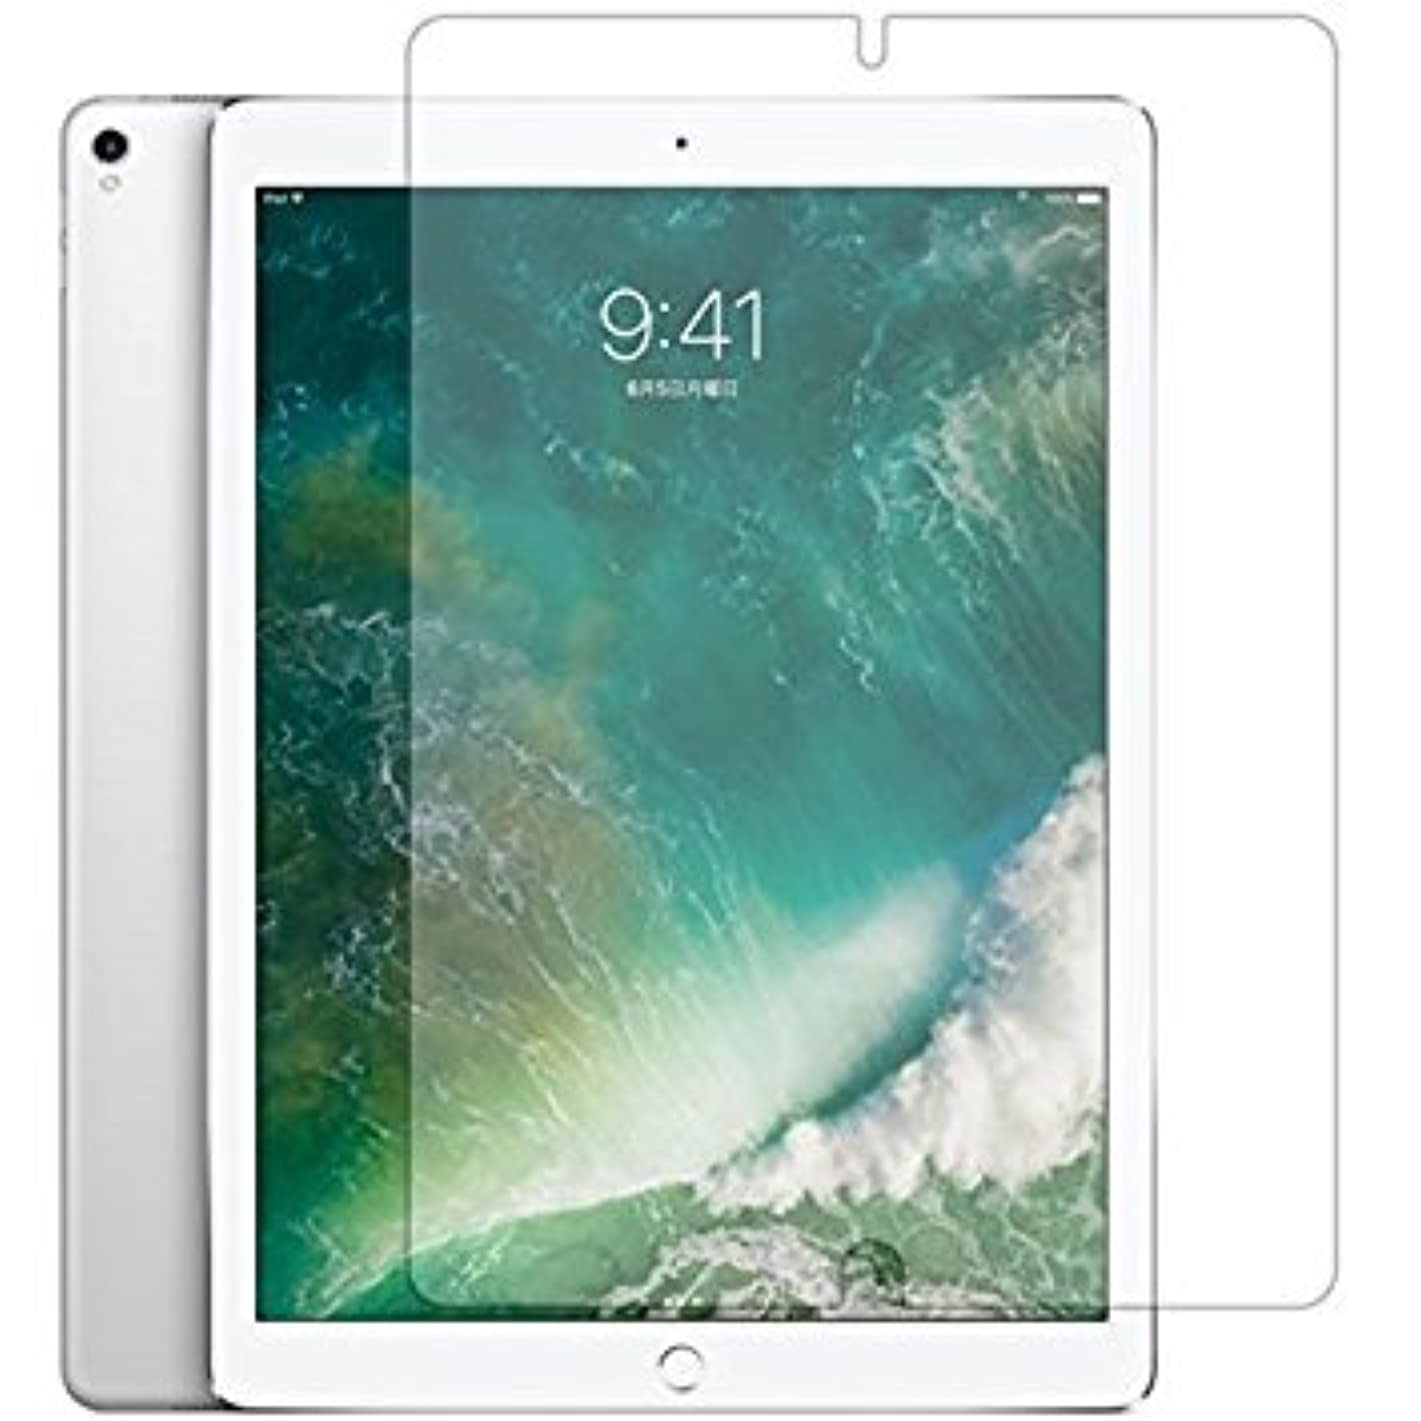 ClearView Paper-Like Screen Protecter for Apple iPad Pro 12.9-inch (2015/2017) [Made in Japan]